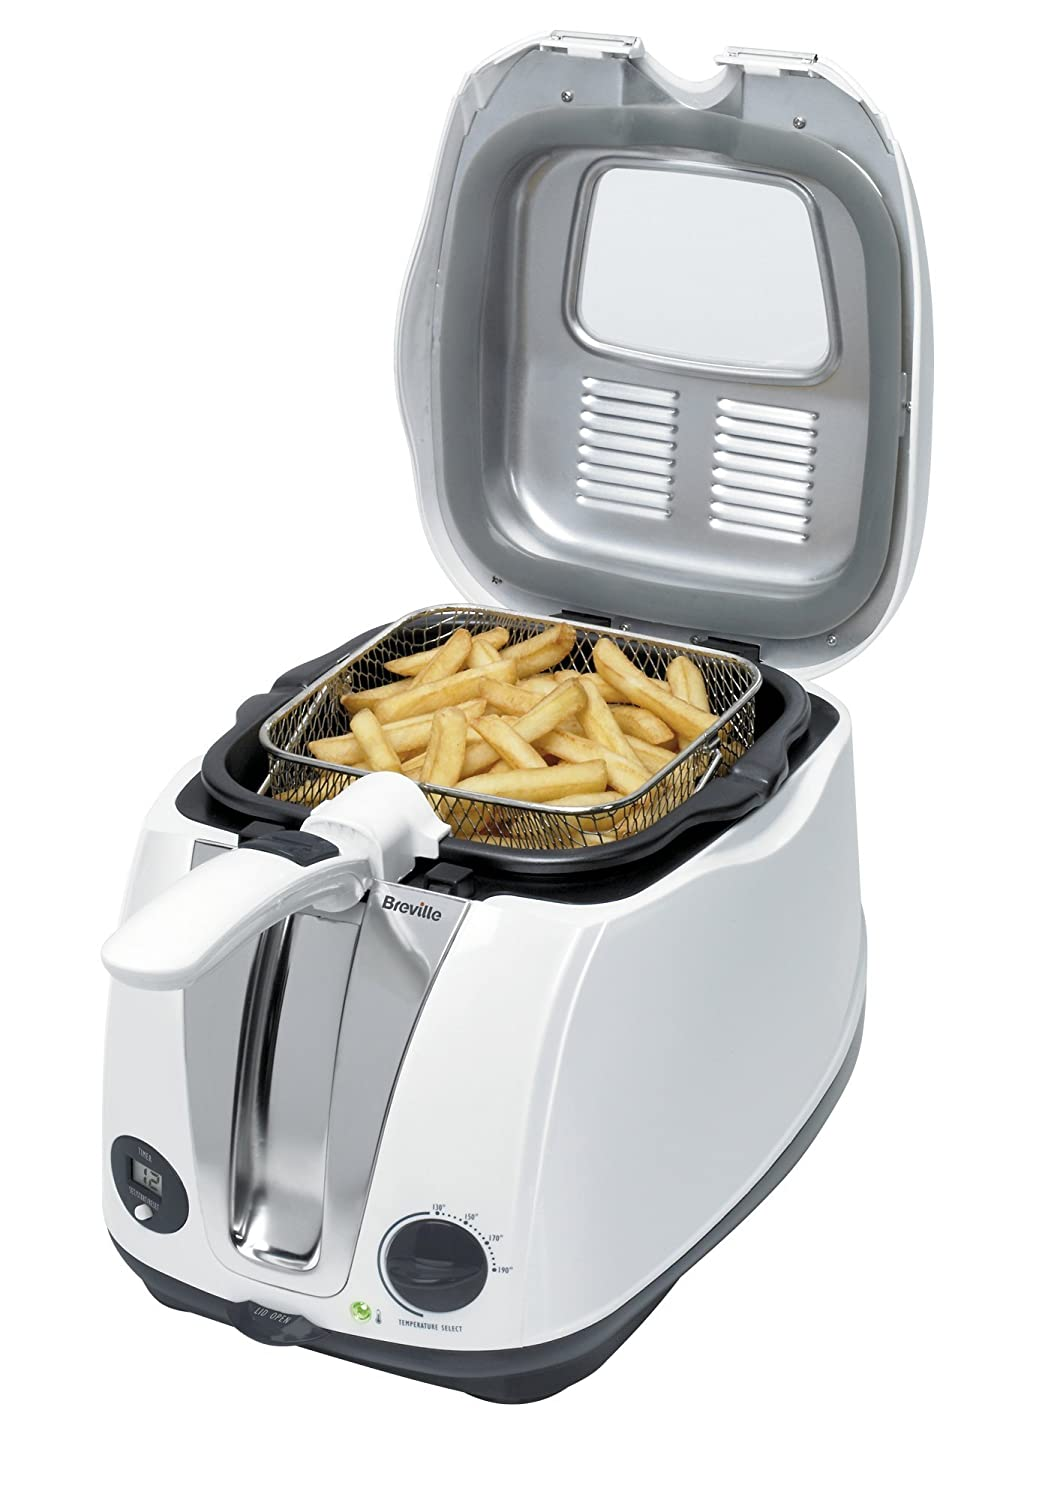 This is a good quality mini deep fat fryer.